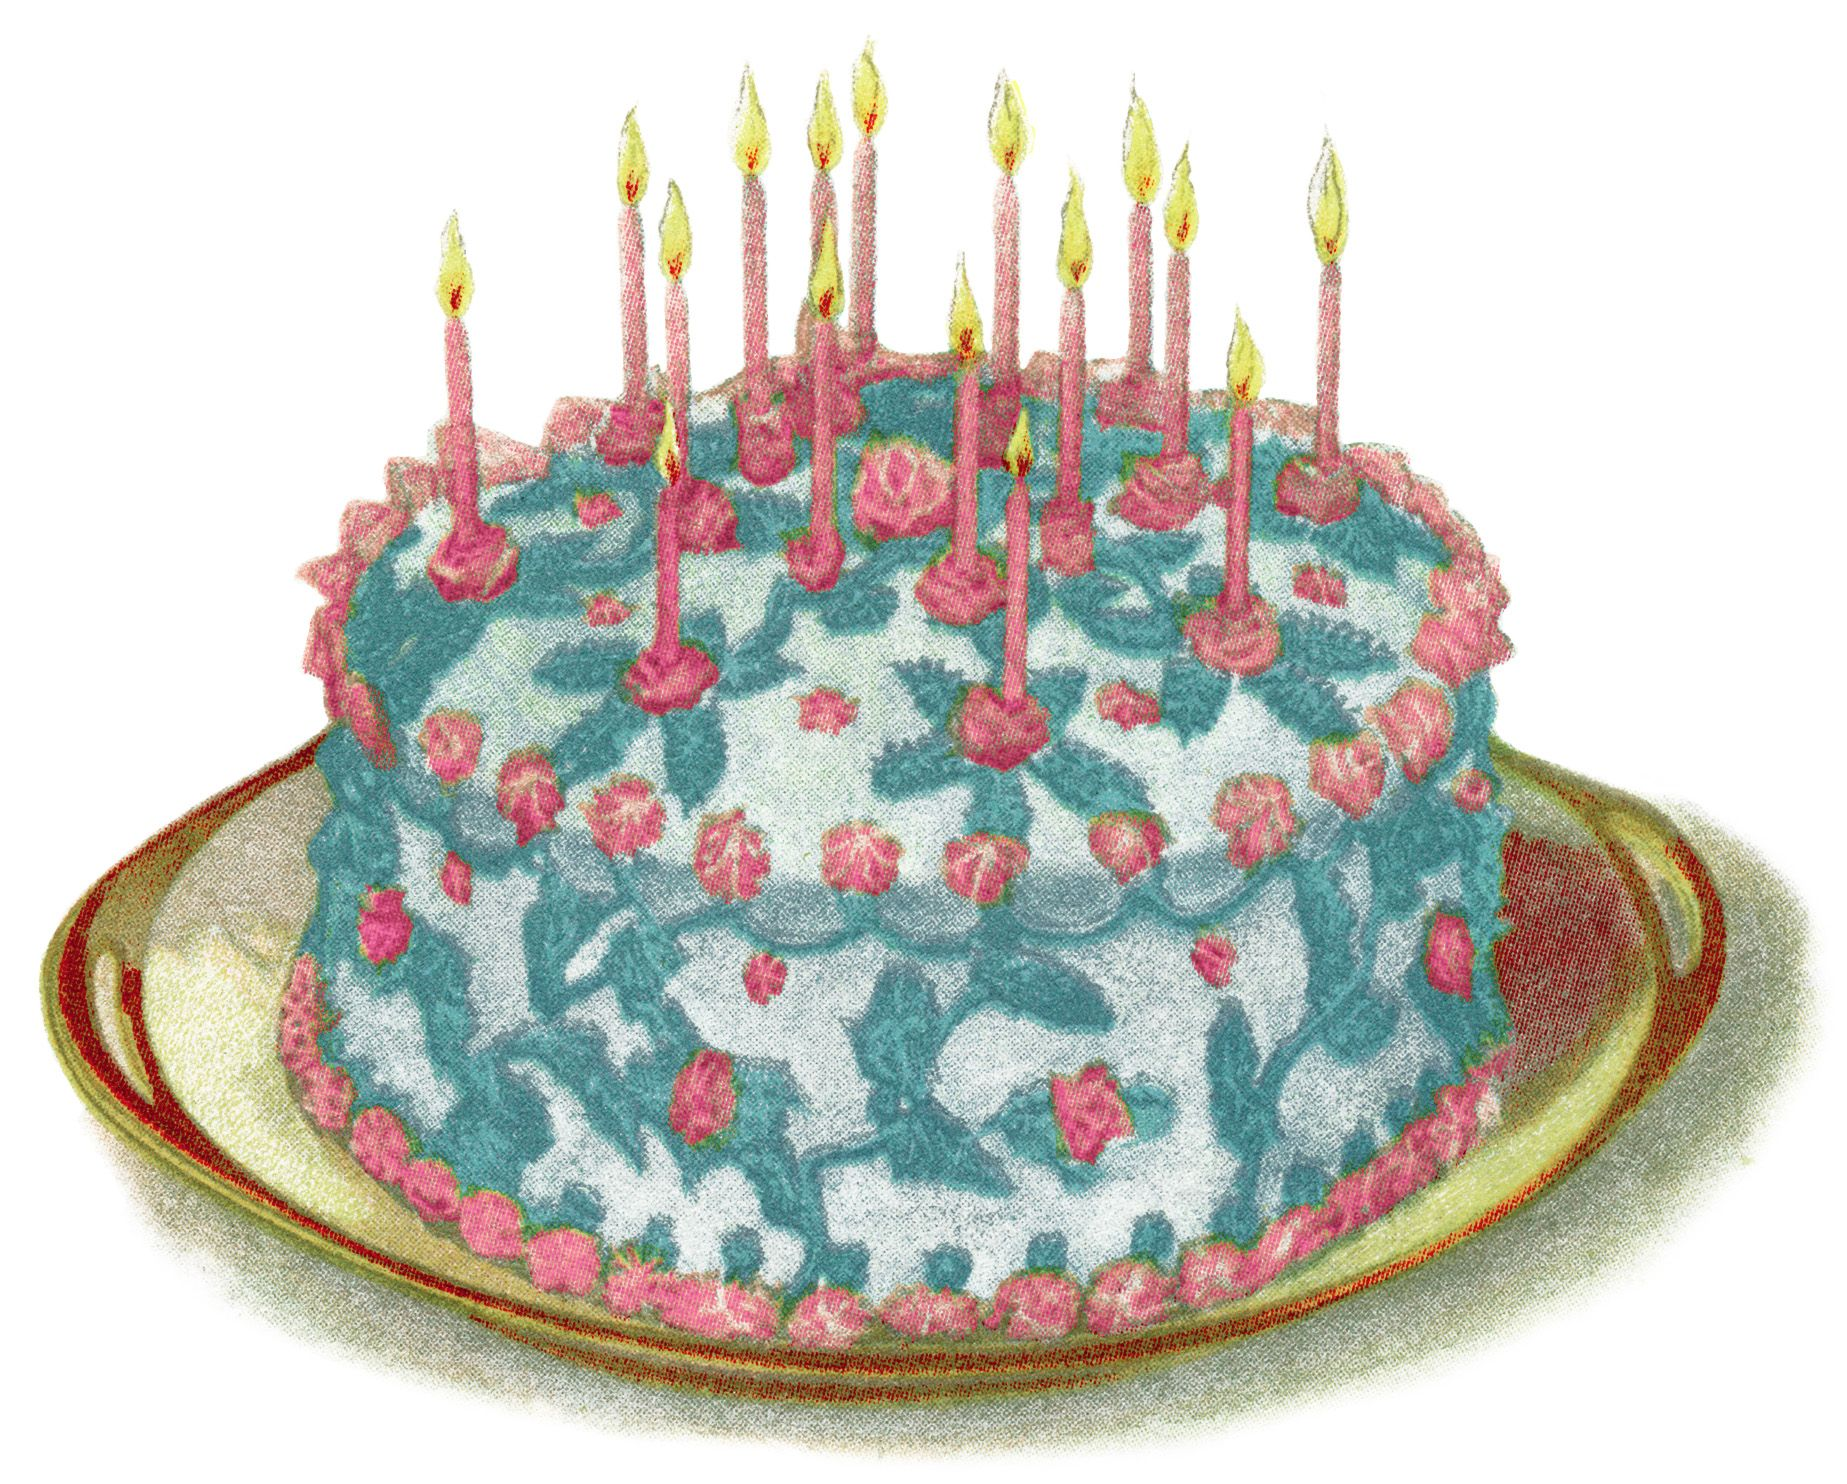 vintage cake clip art birthday cake illustration vintage baking